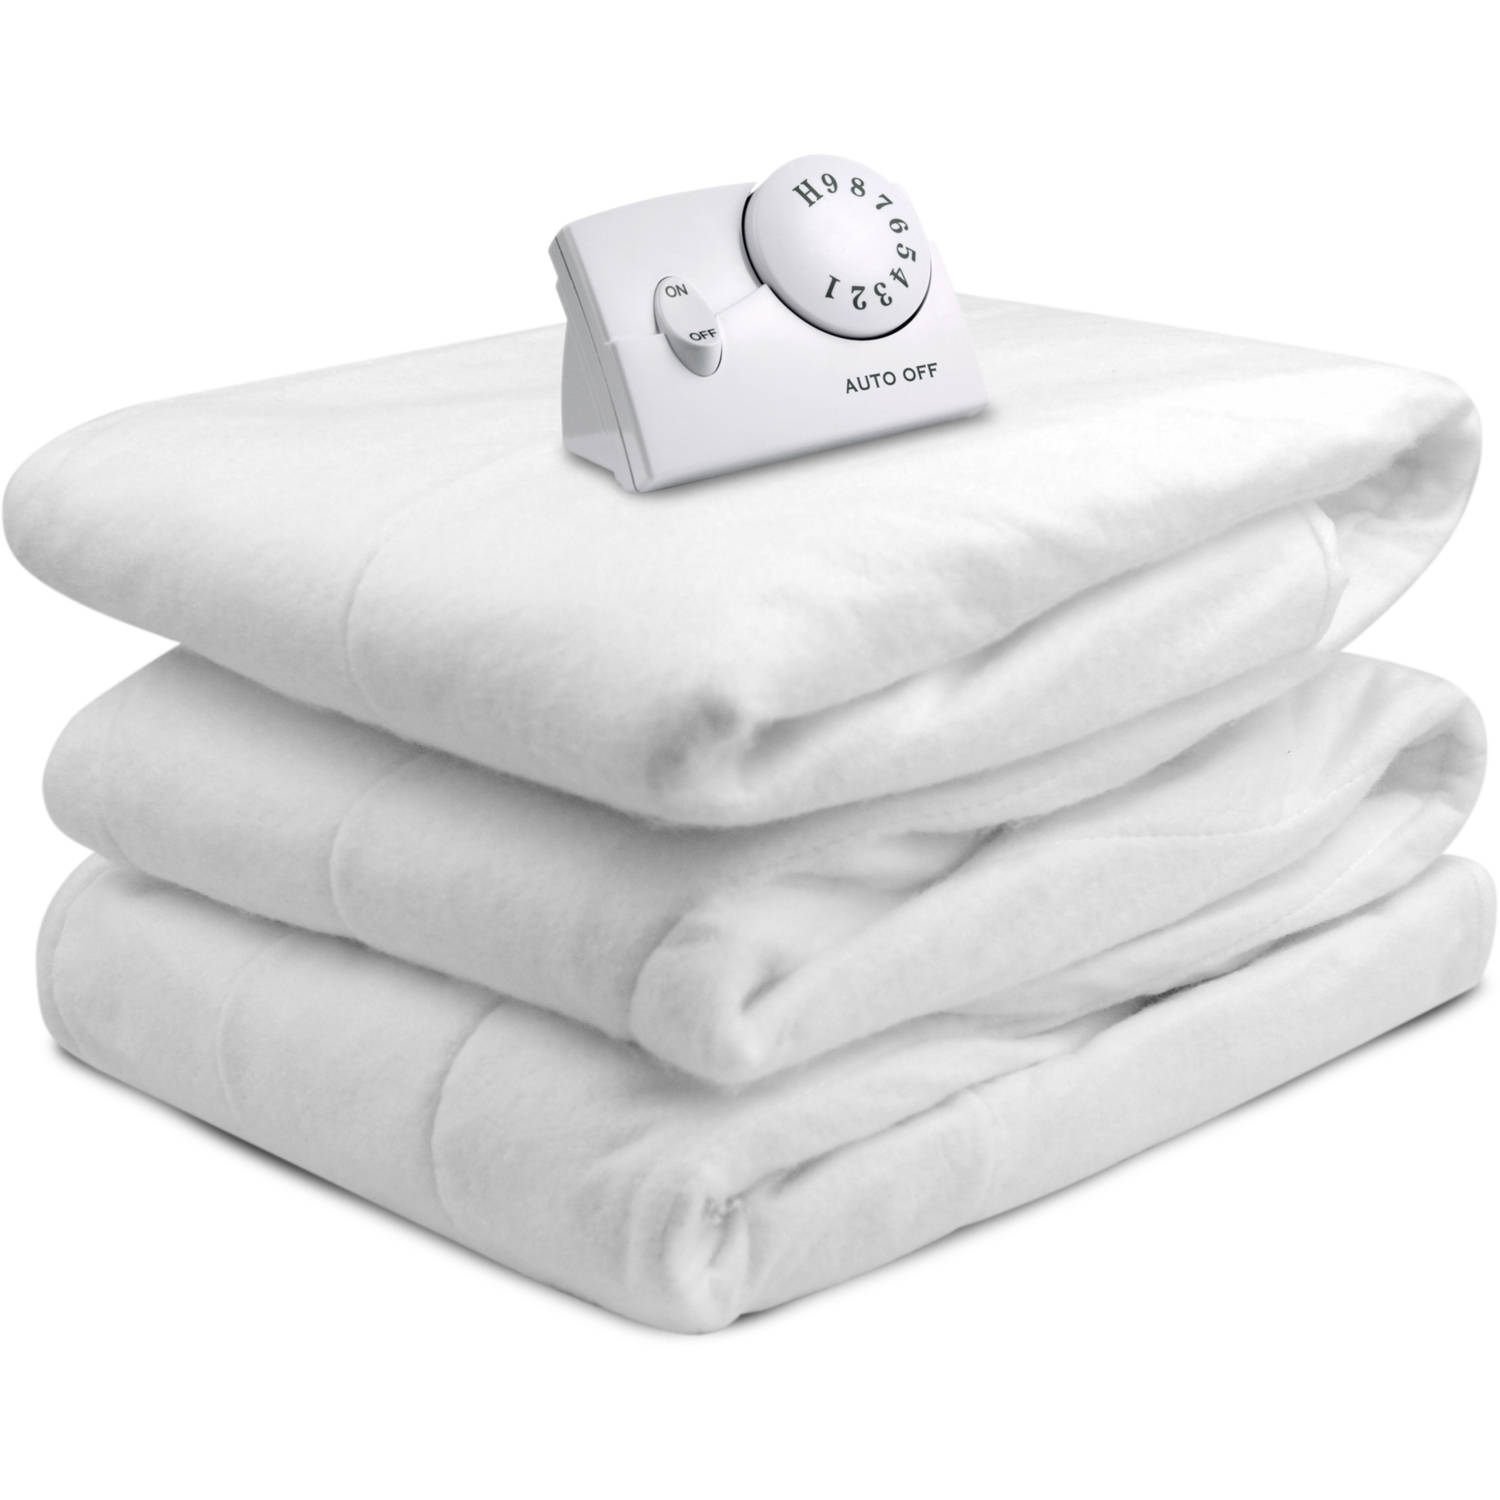 breathtaking hot fetching pads sherpa biddeford size heat kmart control blanket quilted review heated pretty king pad dual mattress reversible bl electric up queen dw